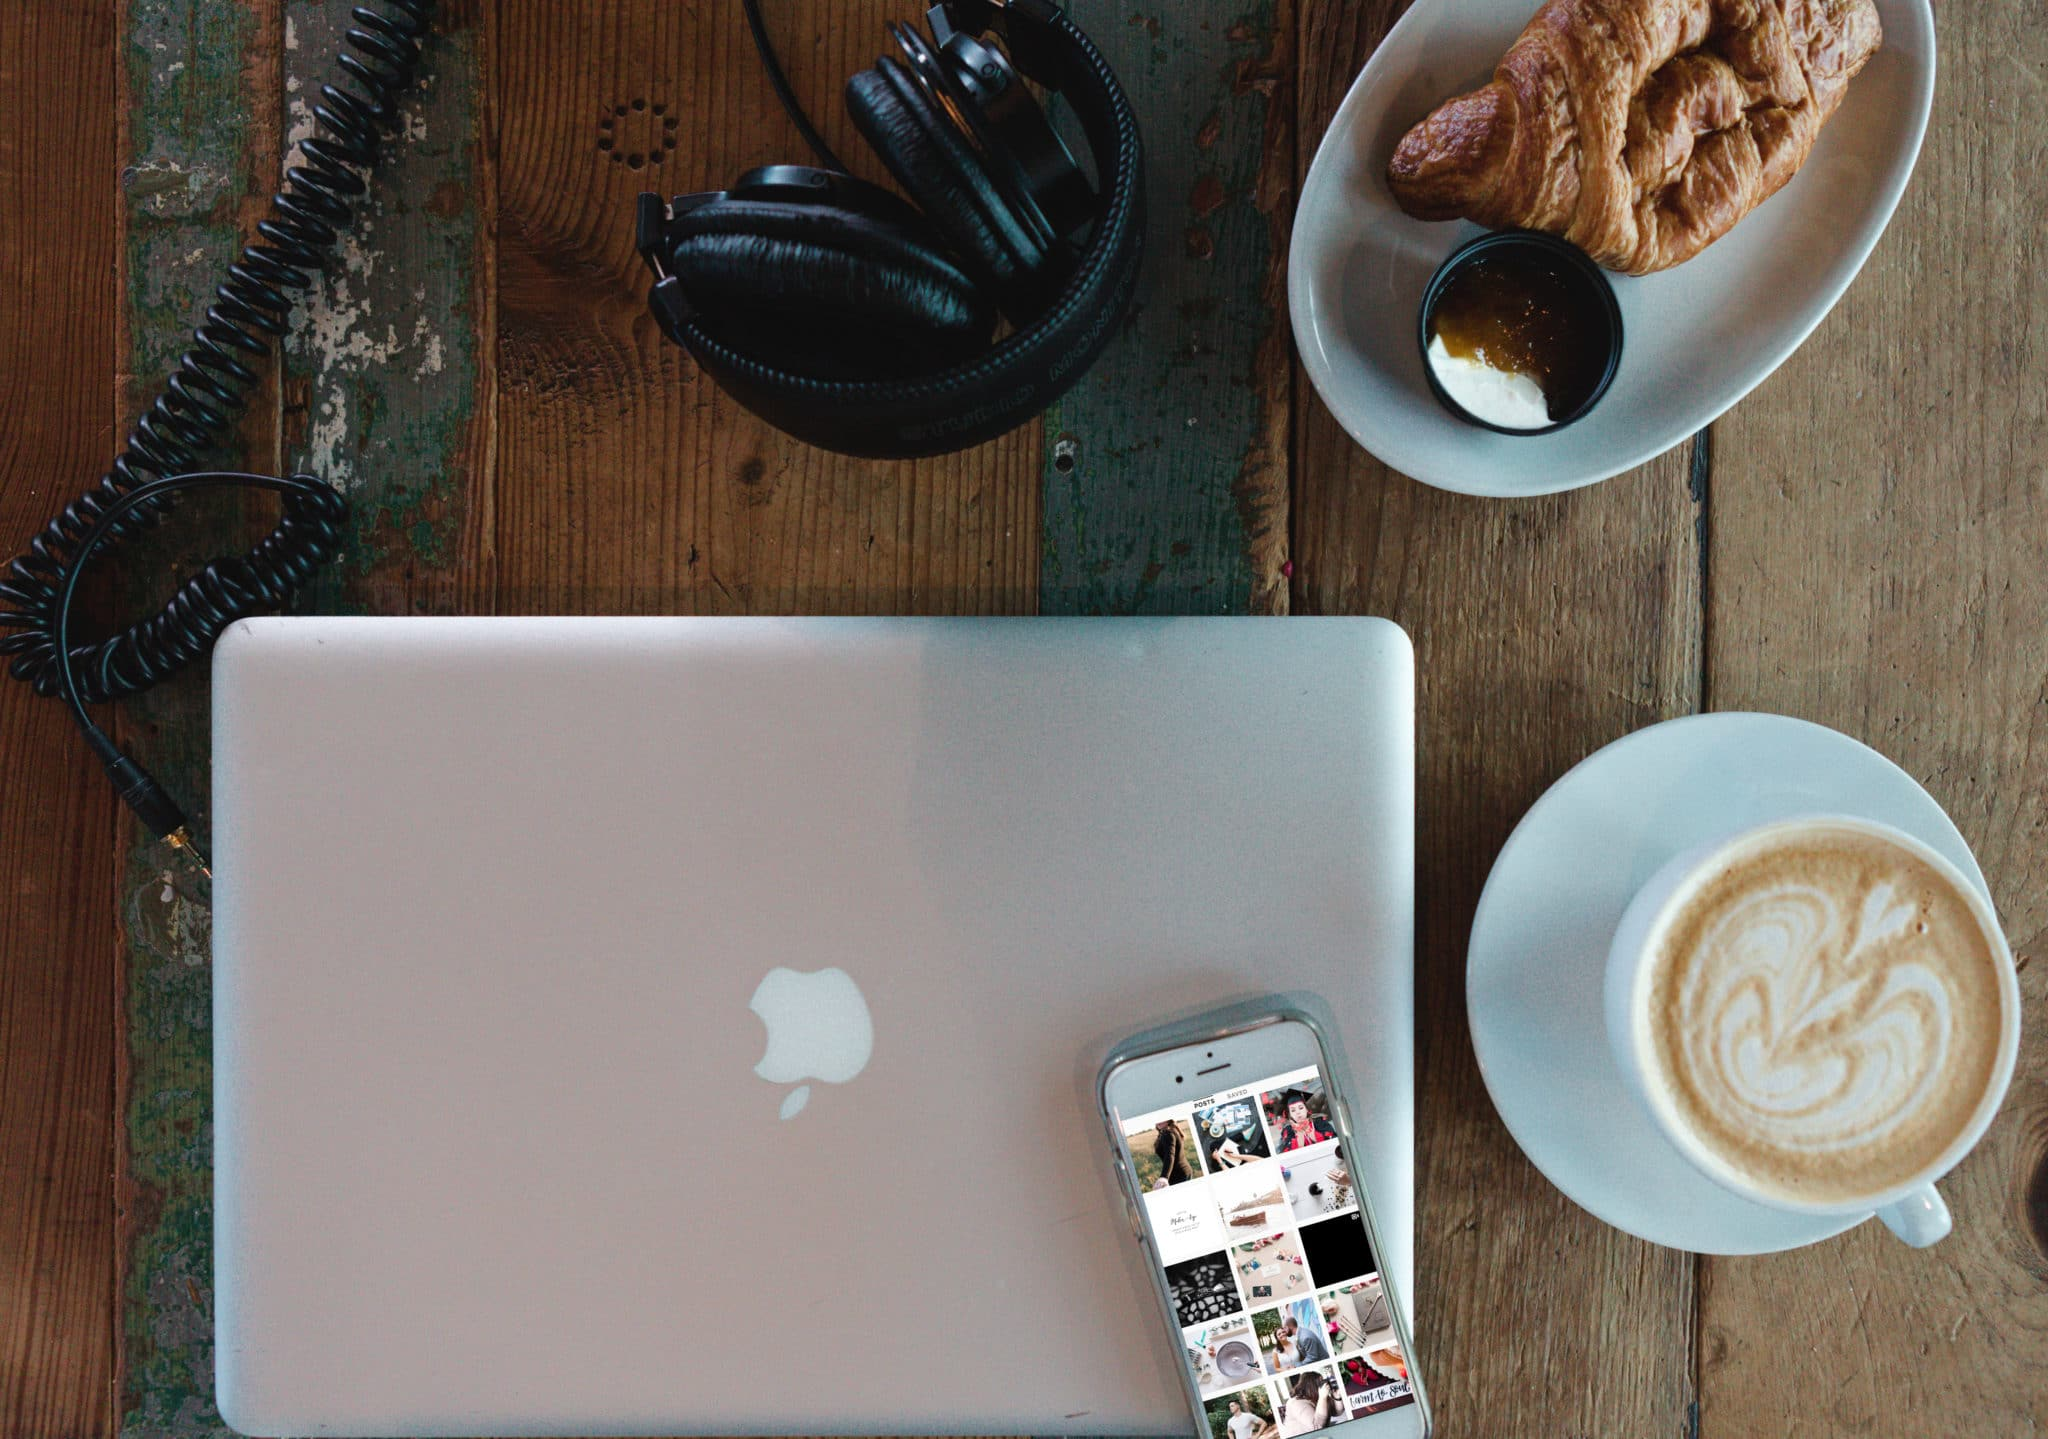 3 Ways to Get More from Instagram